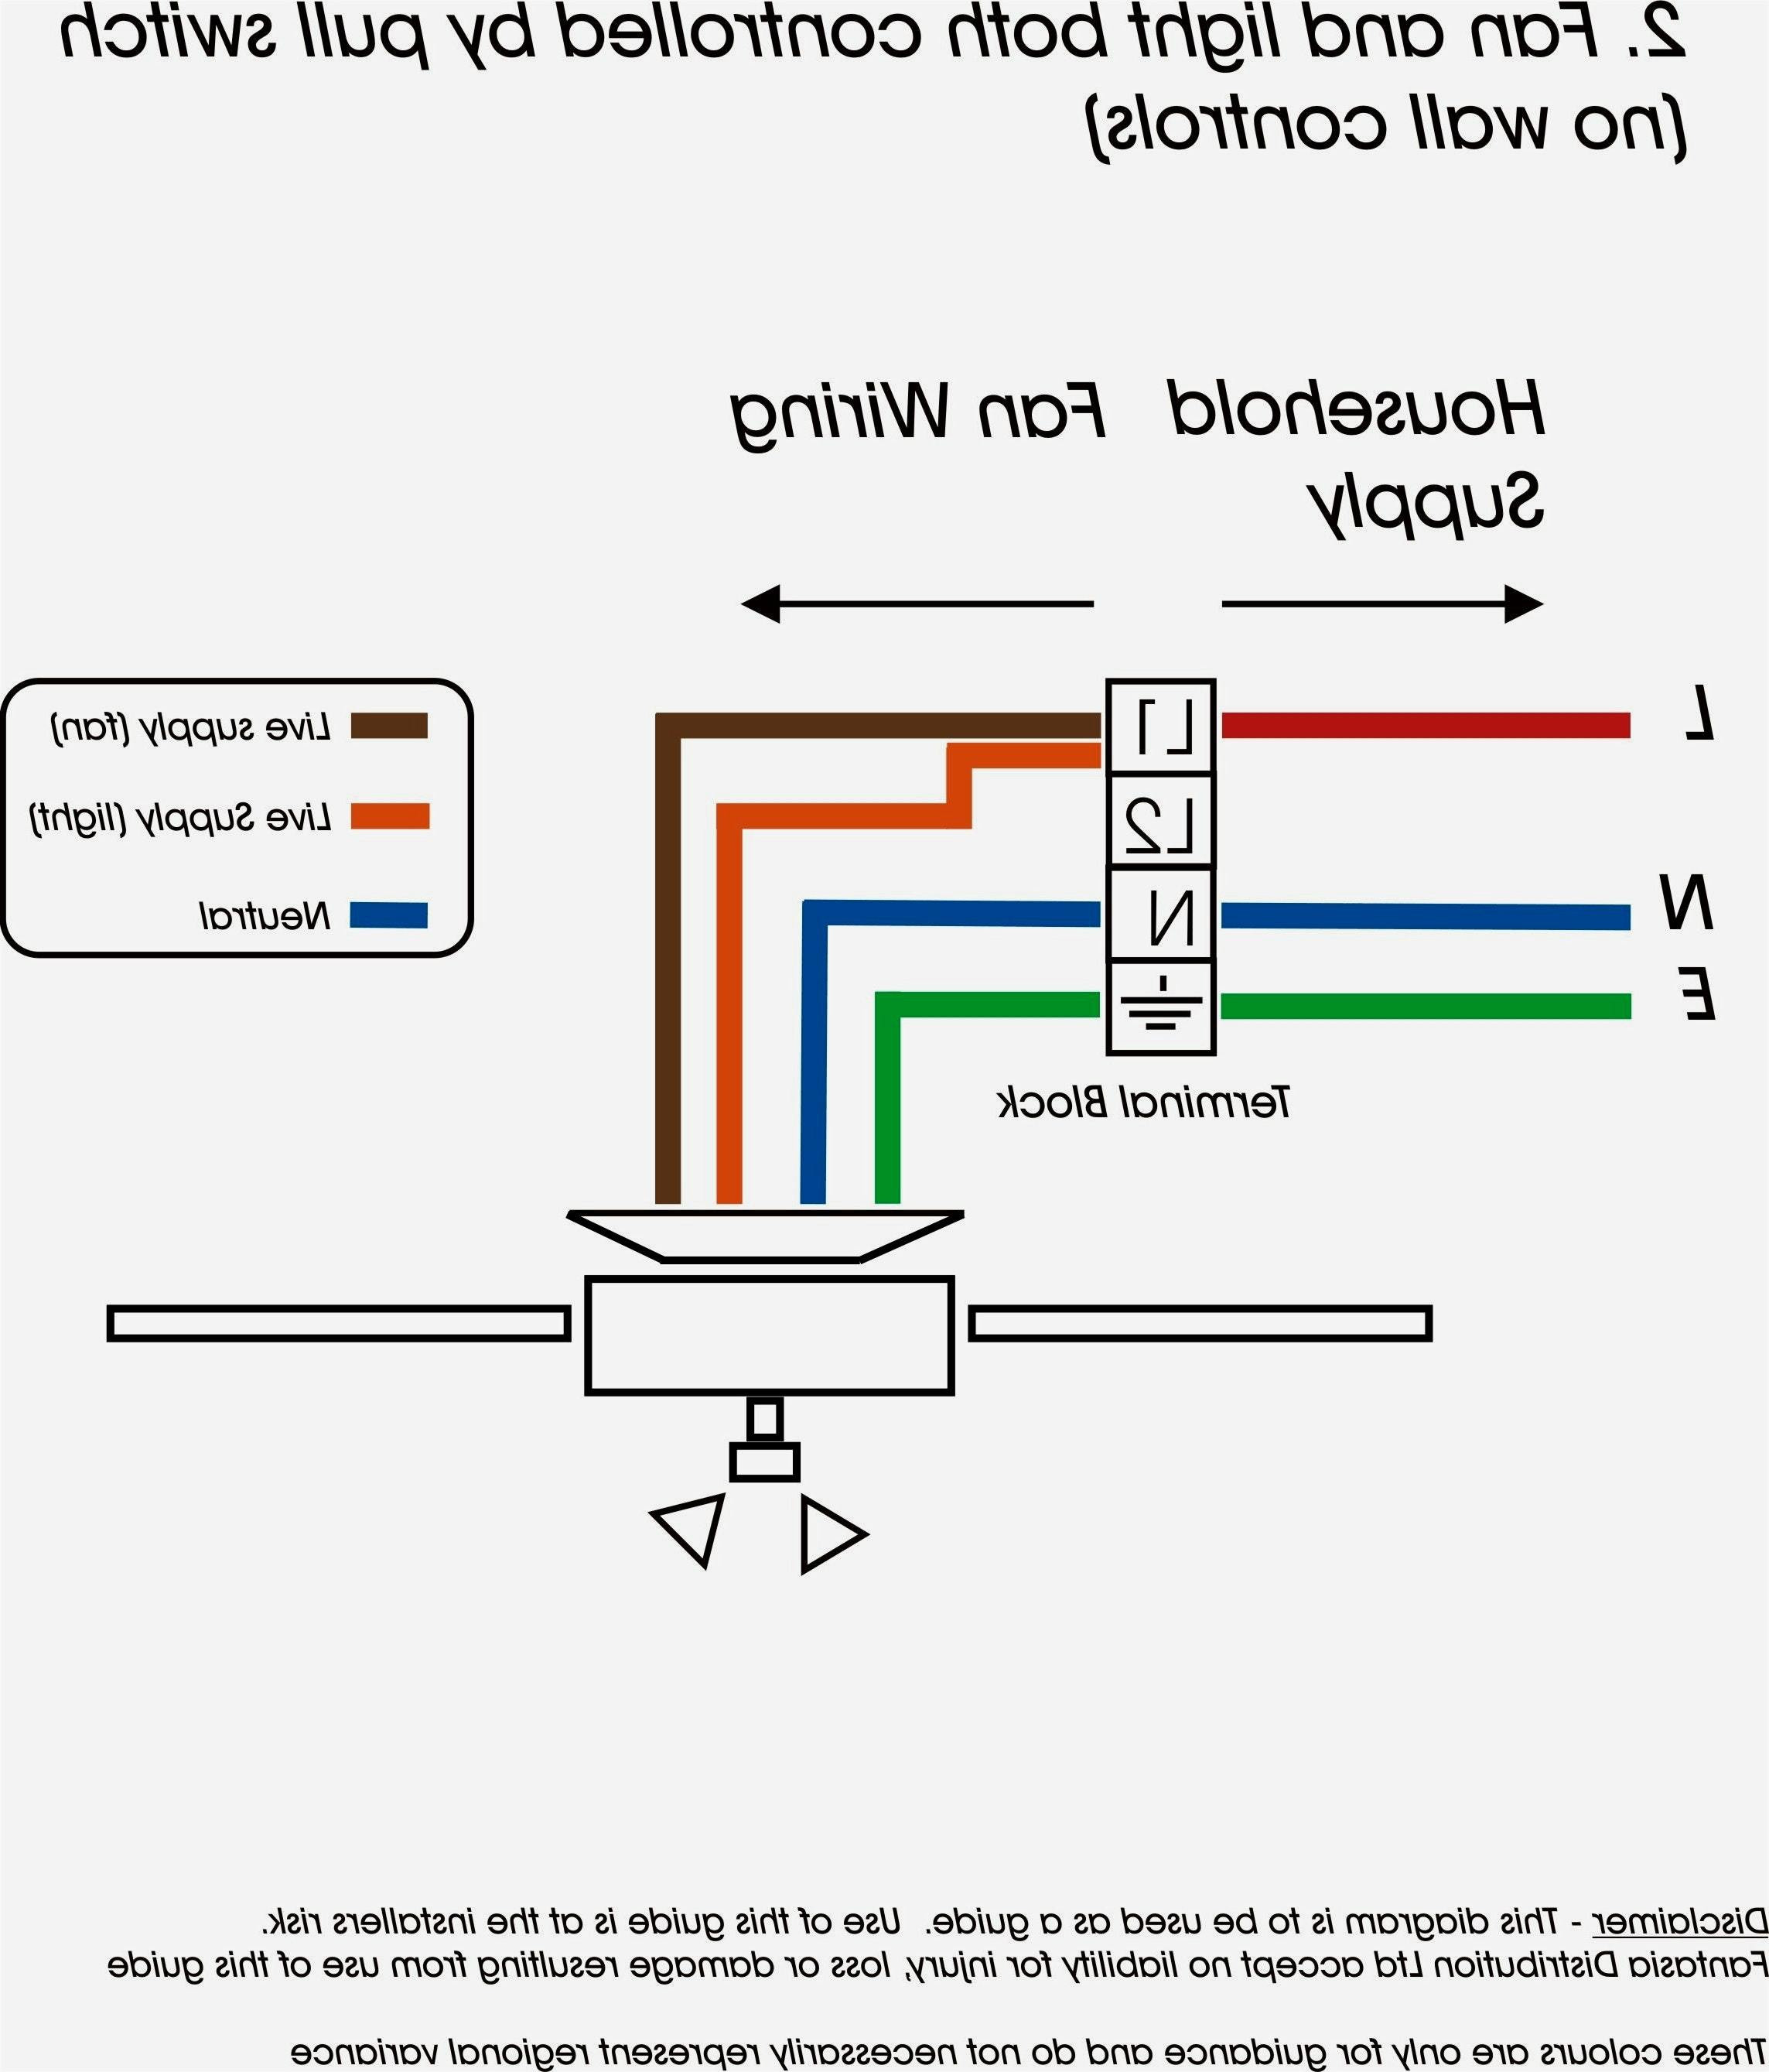 ceiling fan 3 speed wall switch wiring diagram Collection-Hampton Bay Fan Switch 4 Wire 3 Speed Ceiling Pull Chain Wiring Diagram Light Jpg Resize 20-l